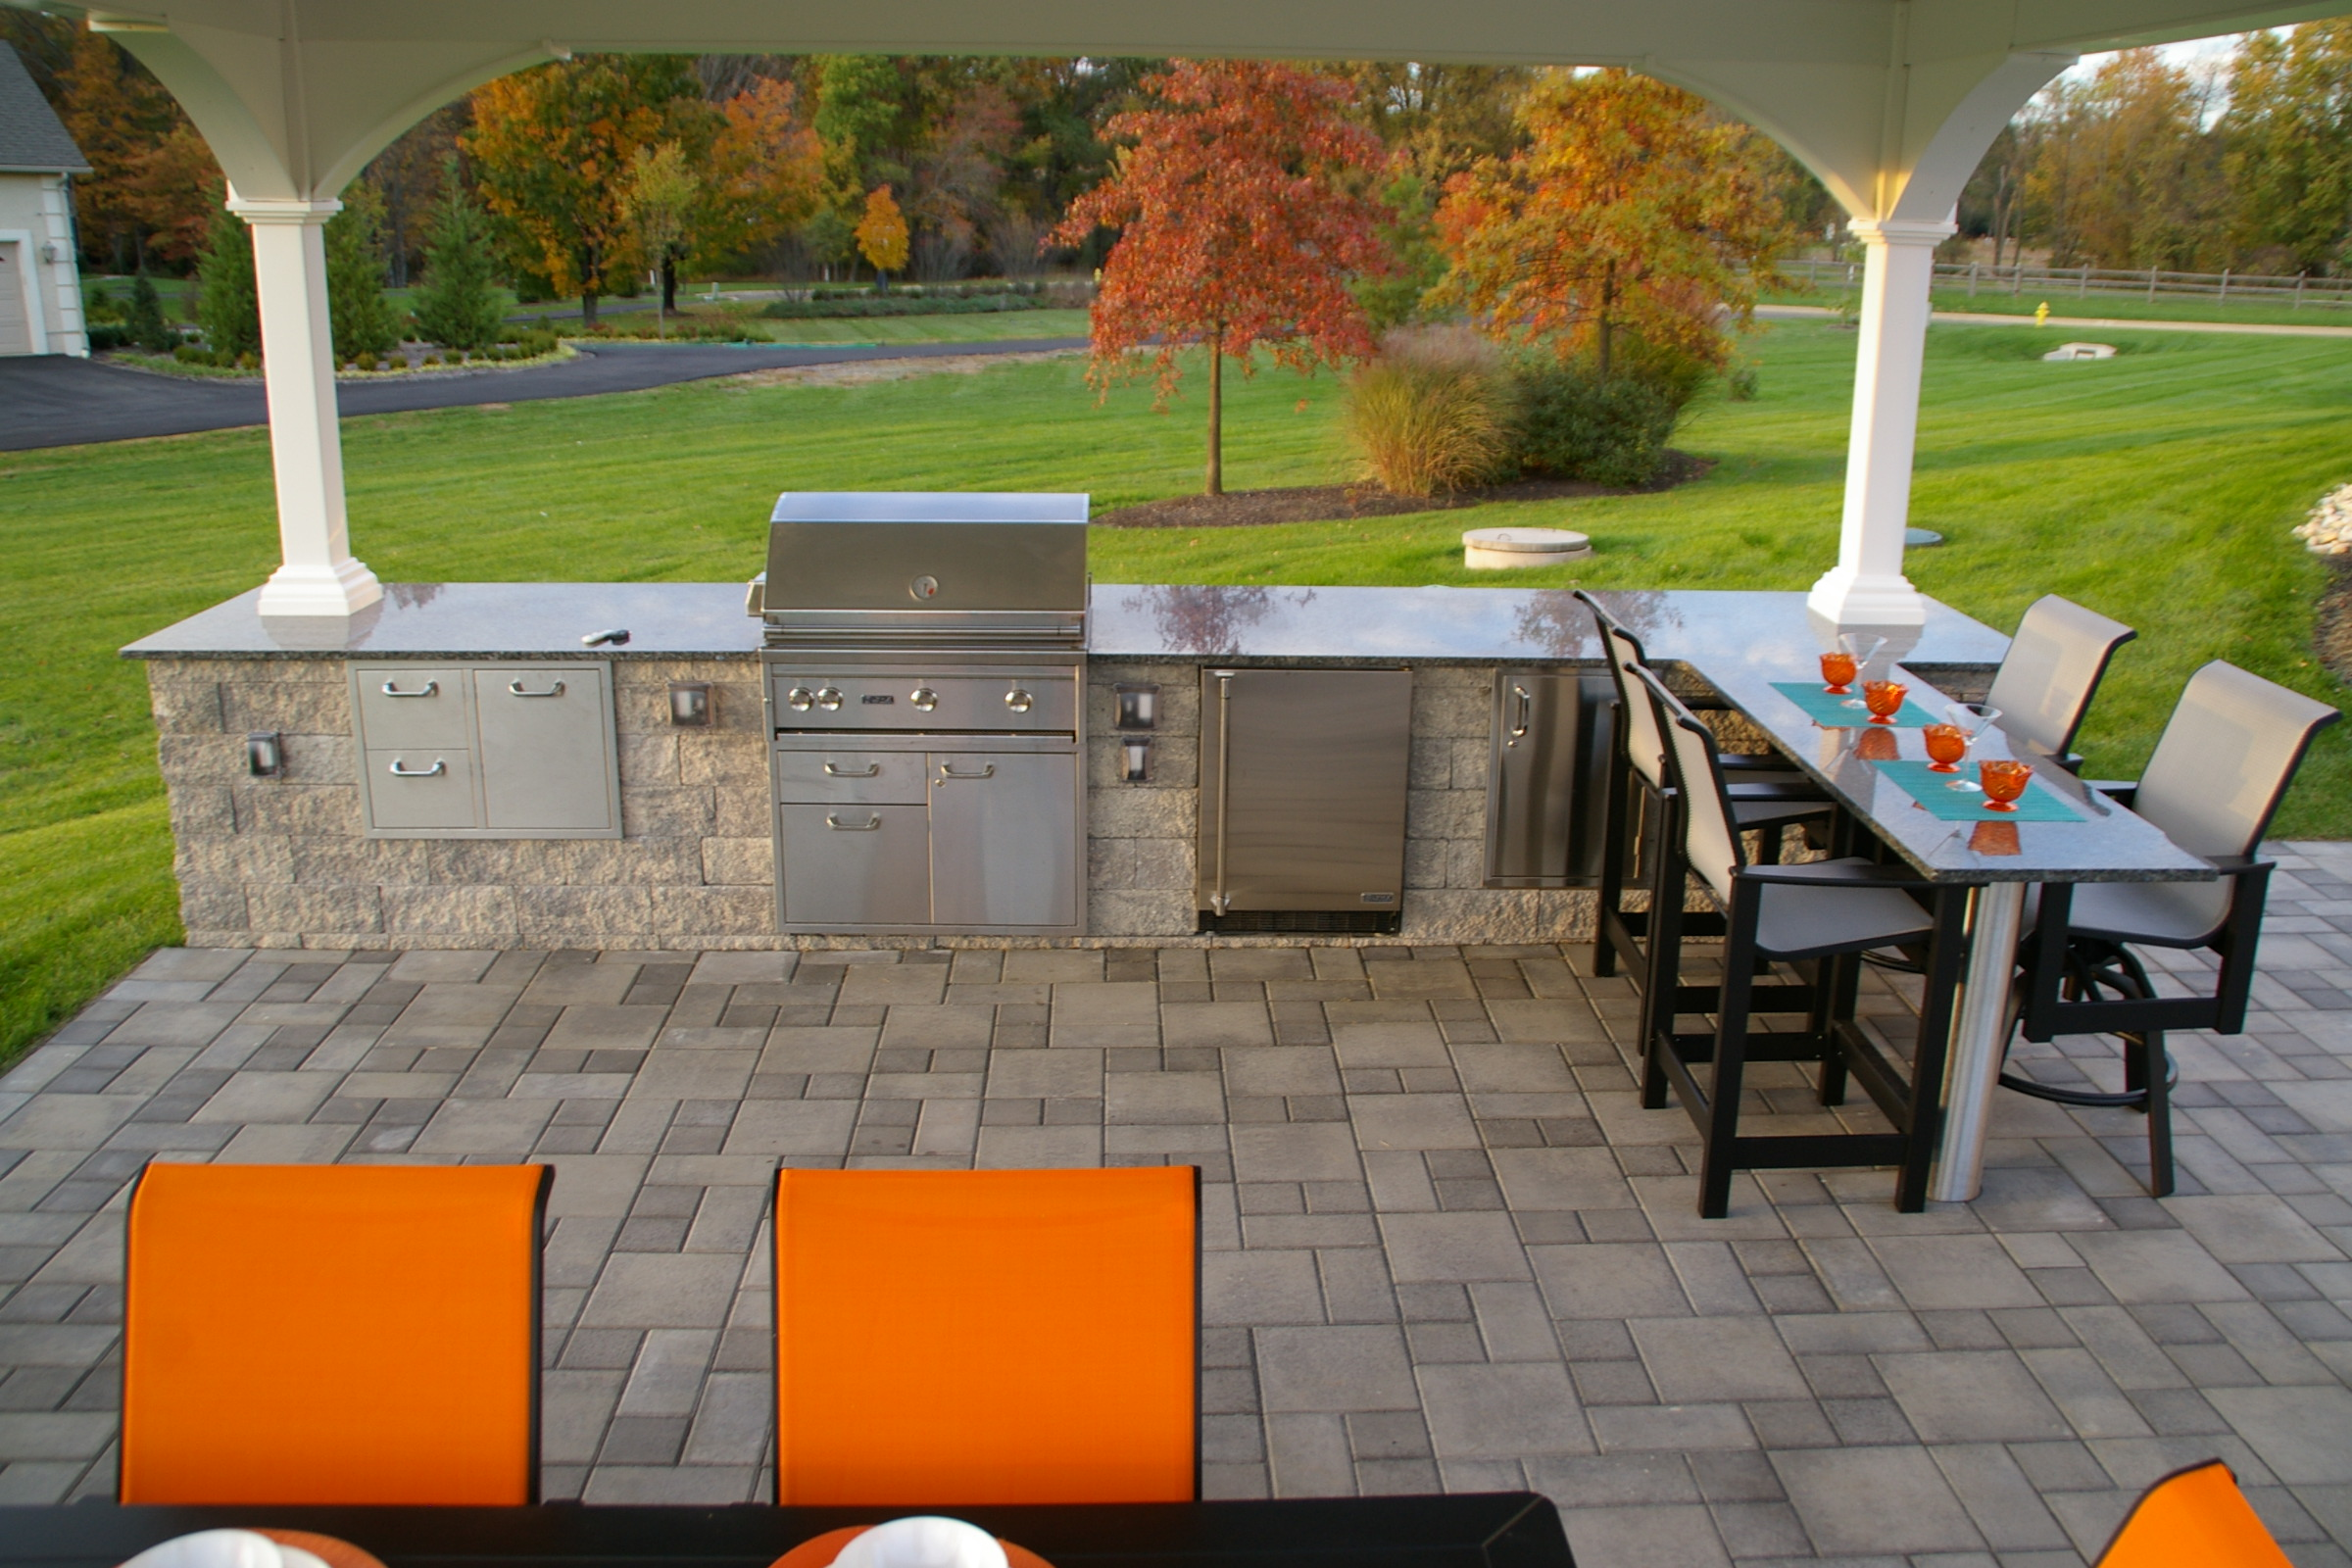 outdoor kitchen archives - garden design inc.